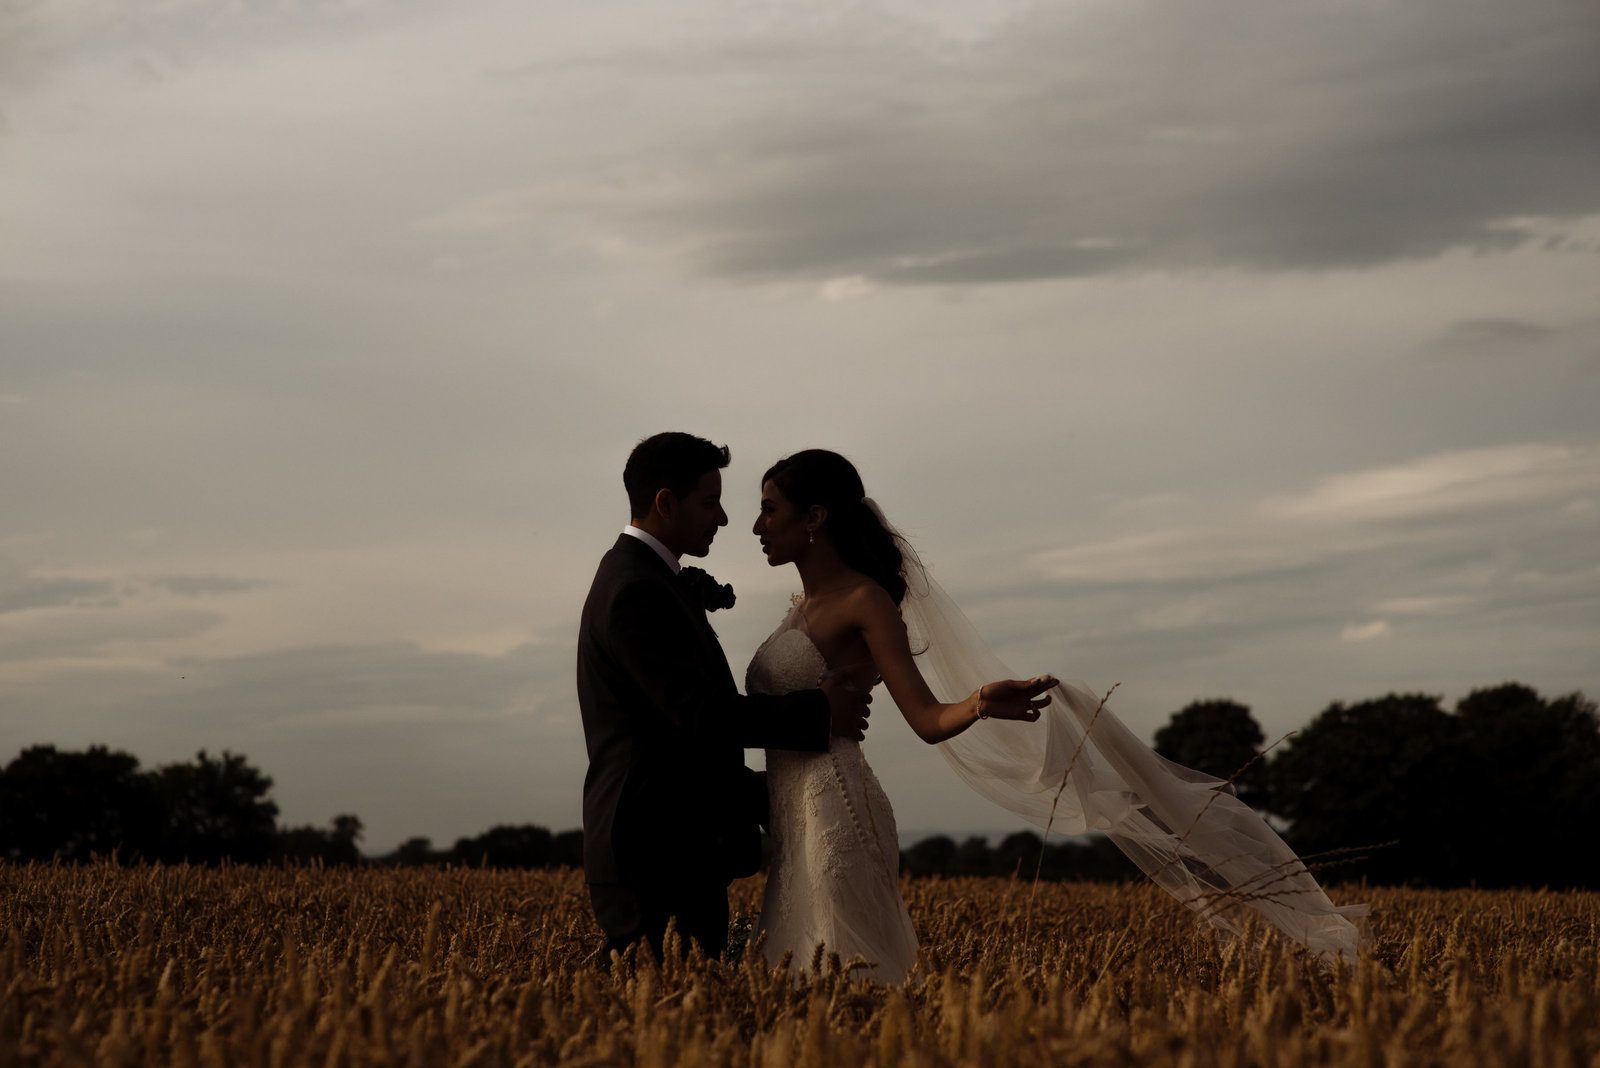 Bride and groom in wheat field at The normans Wedding venue. Contemporary wedding photographer